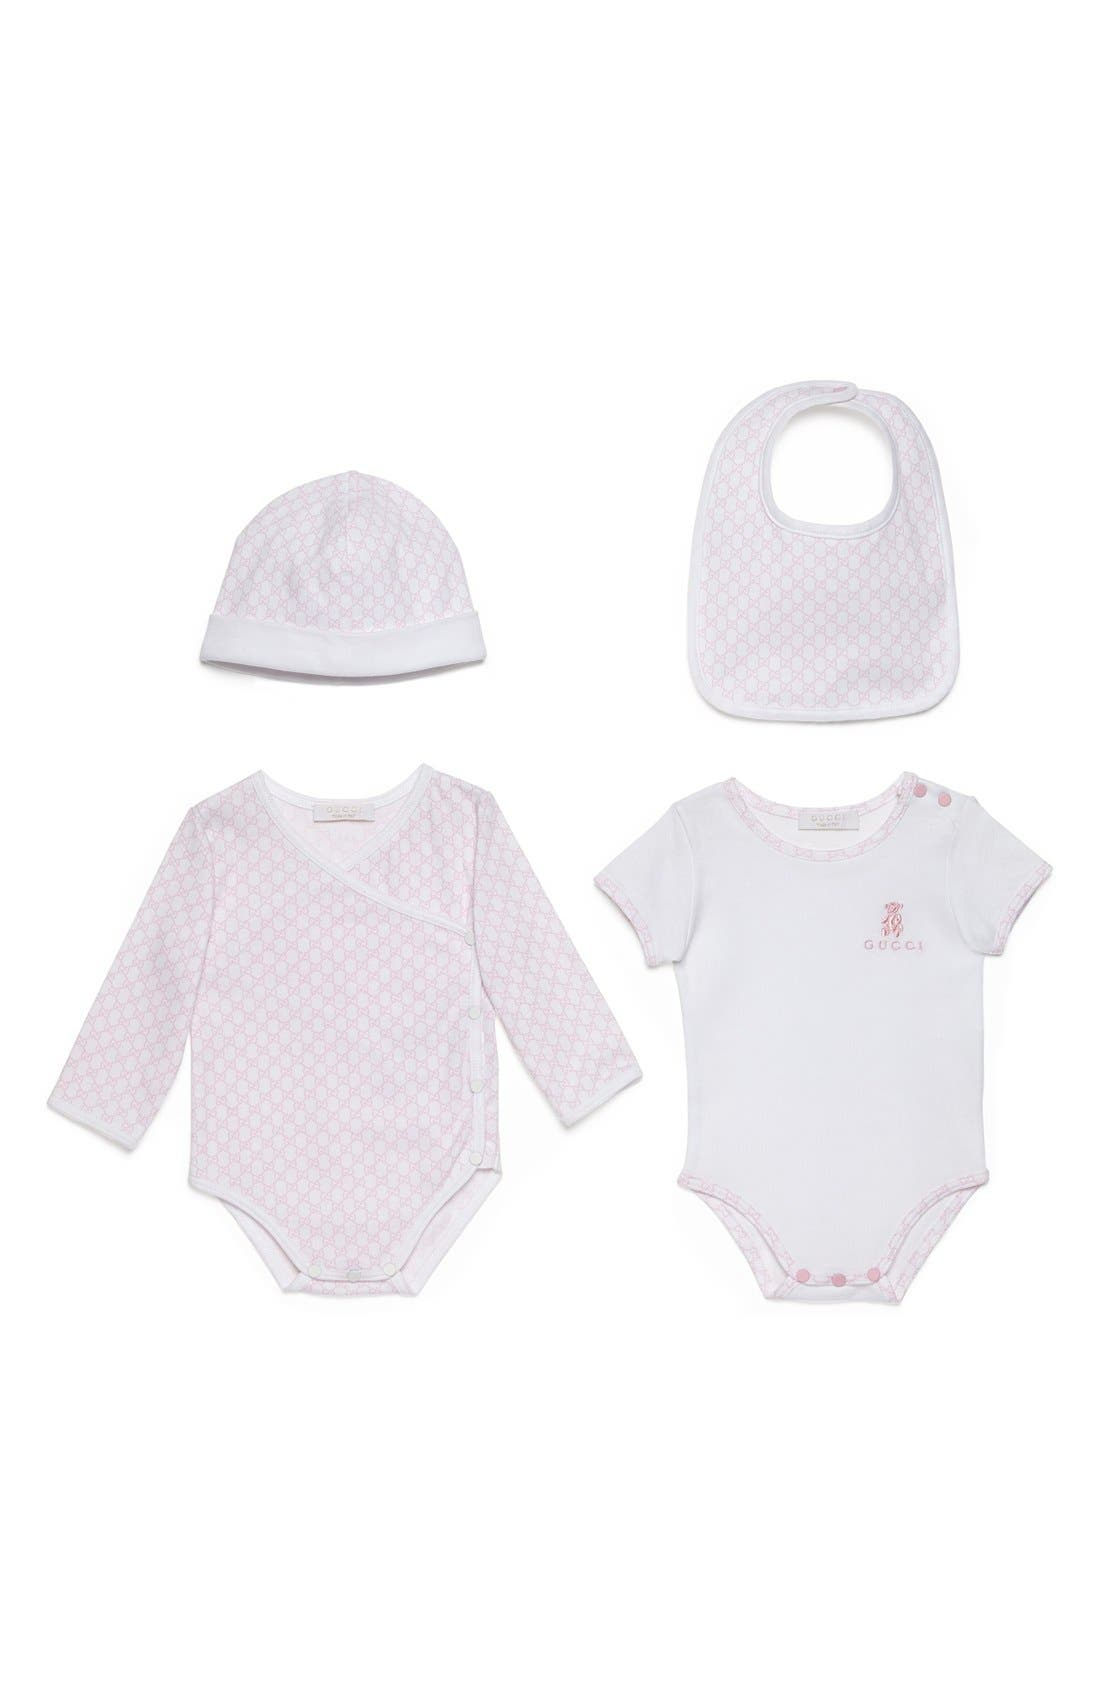 Short Sleeve Bodysuit, Long Sleeve Bodysuit, Hat & Bib Set,                             Main thumbnail 1, color,                             Pink